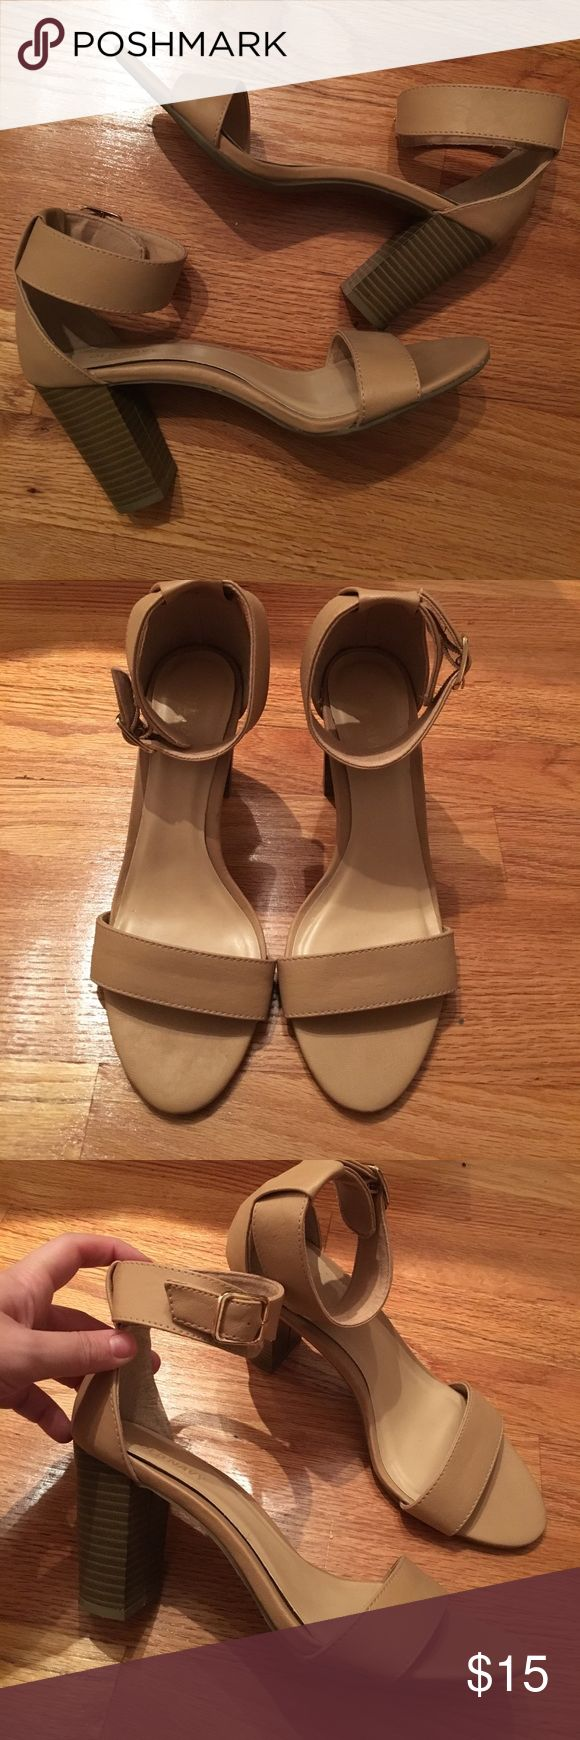 Old navy strappy heels Old navy strappy heels women's size 8. Cream/Nude color, brown heel. Wore once! Buckle is gold. Old Navy Shoes Sandals